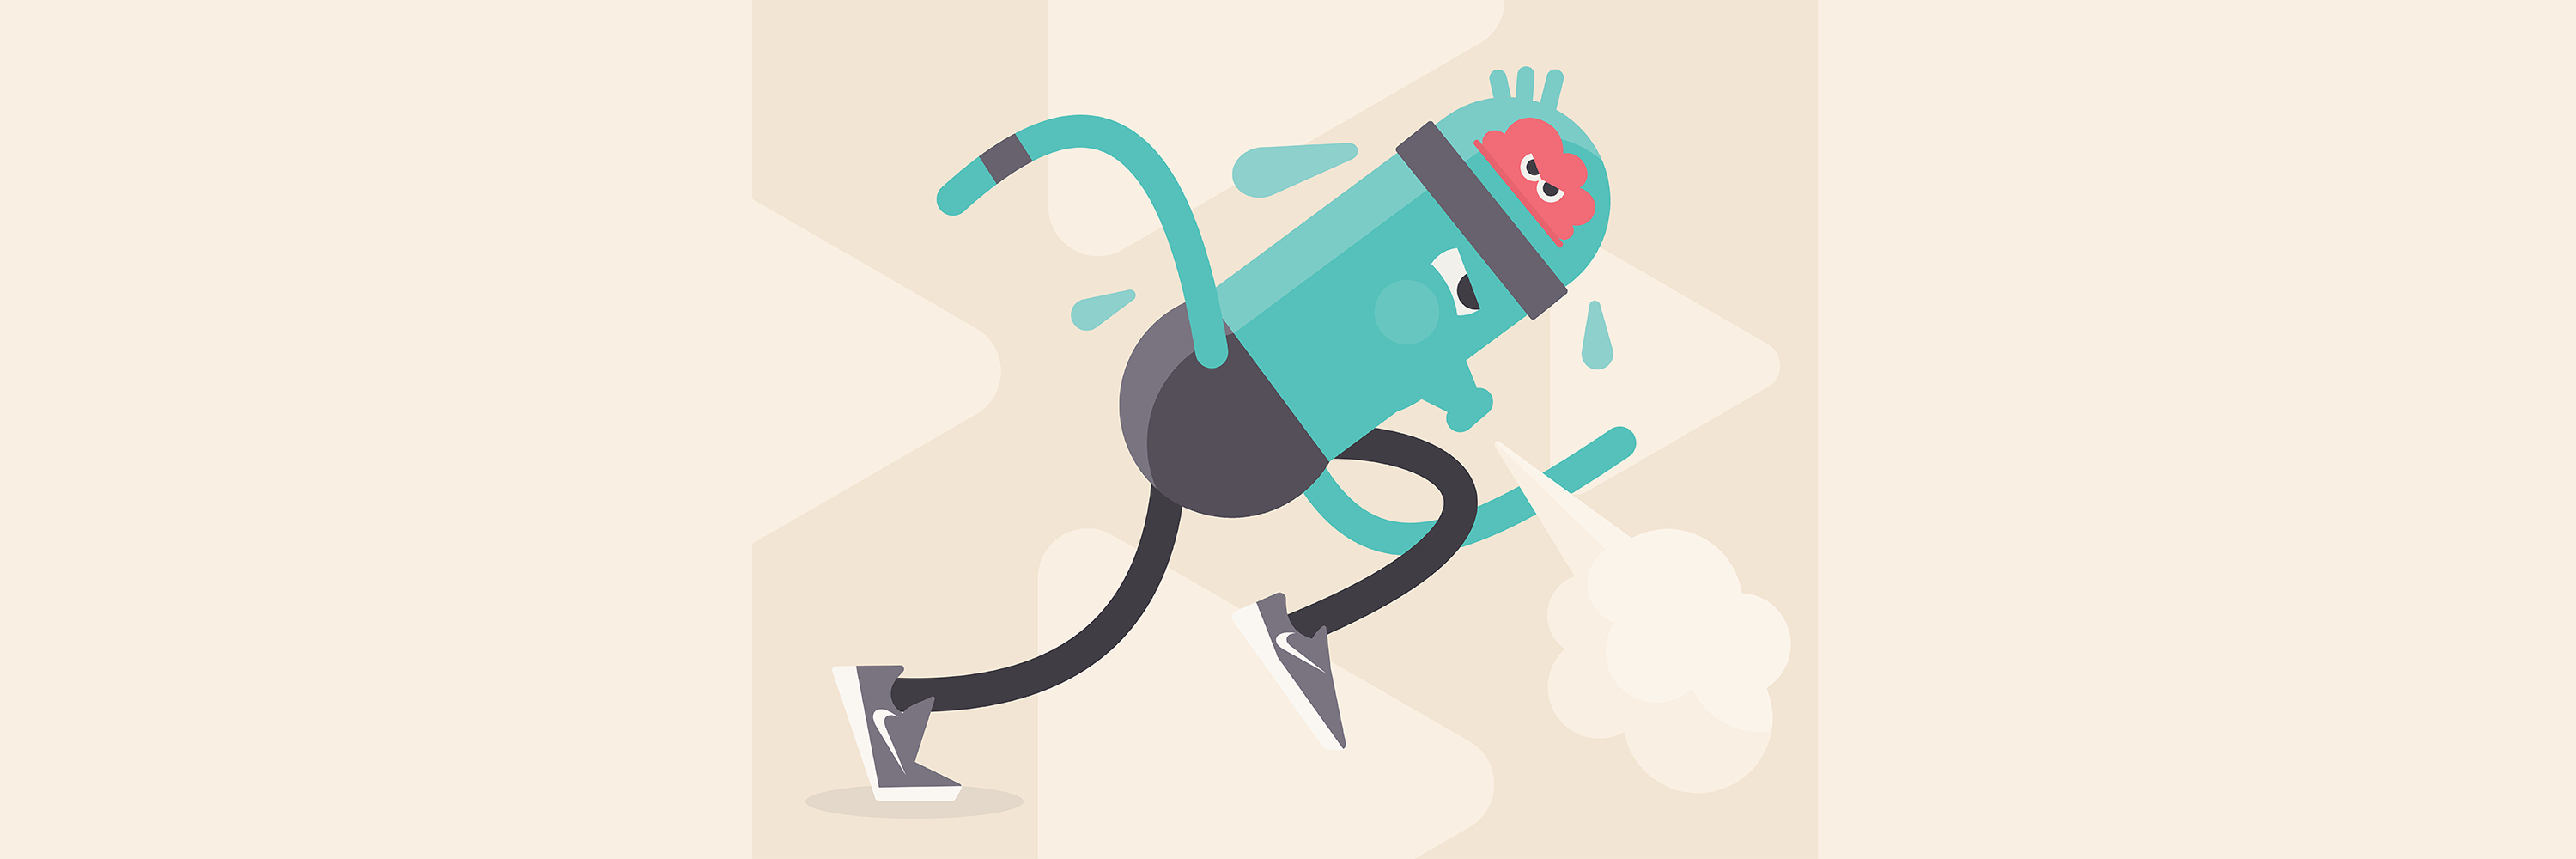 Meditations for Running Headspace